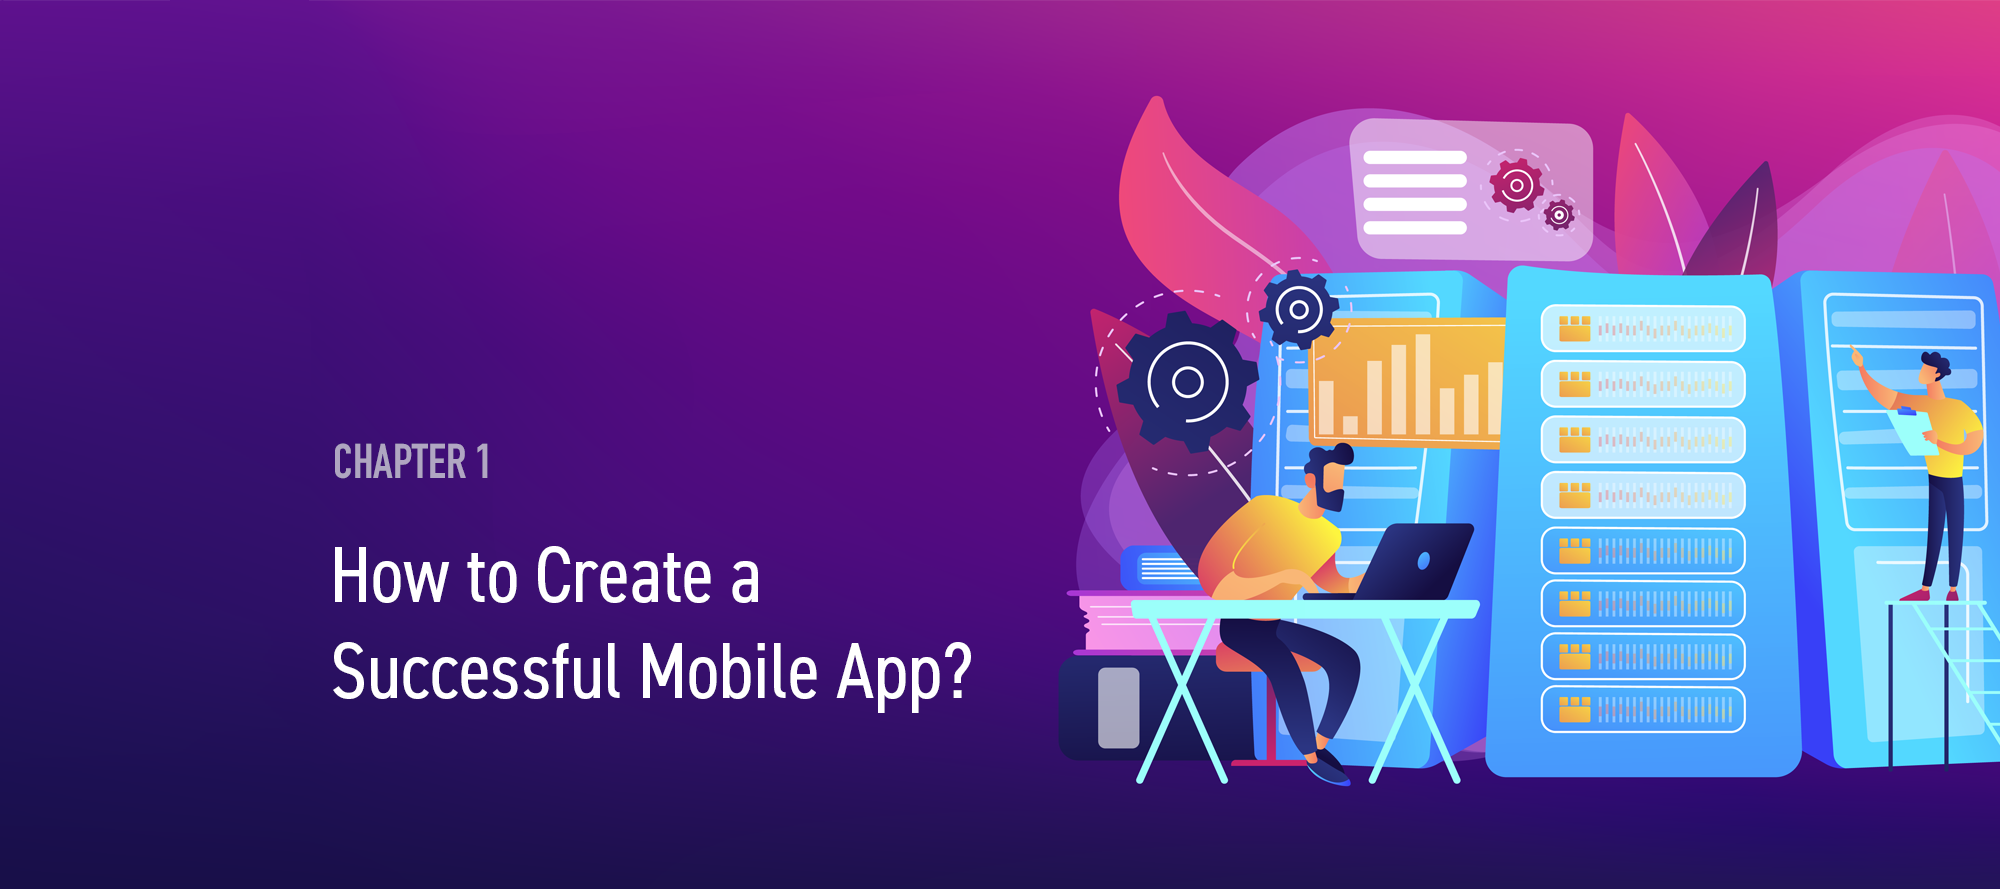 11 steps: How to Create a Successful Mobile App? | Chapter 1